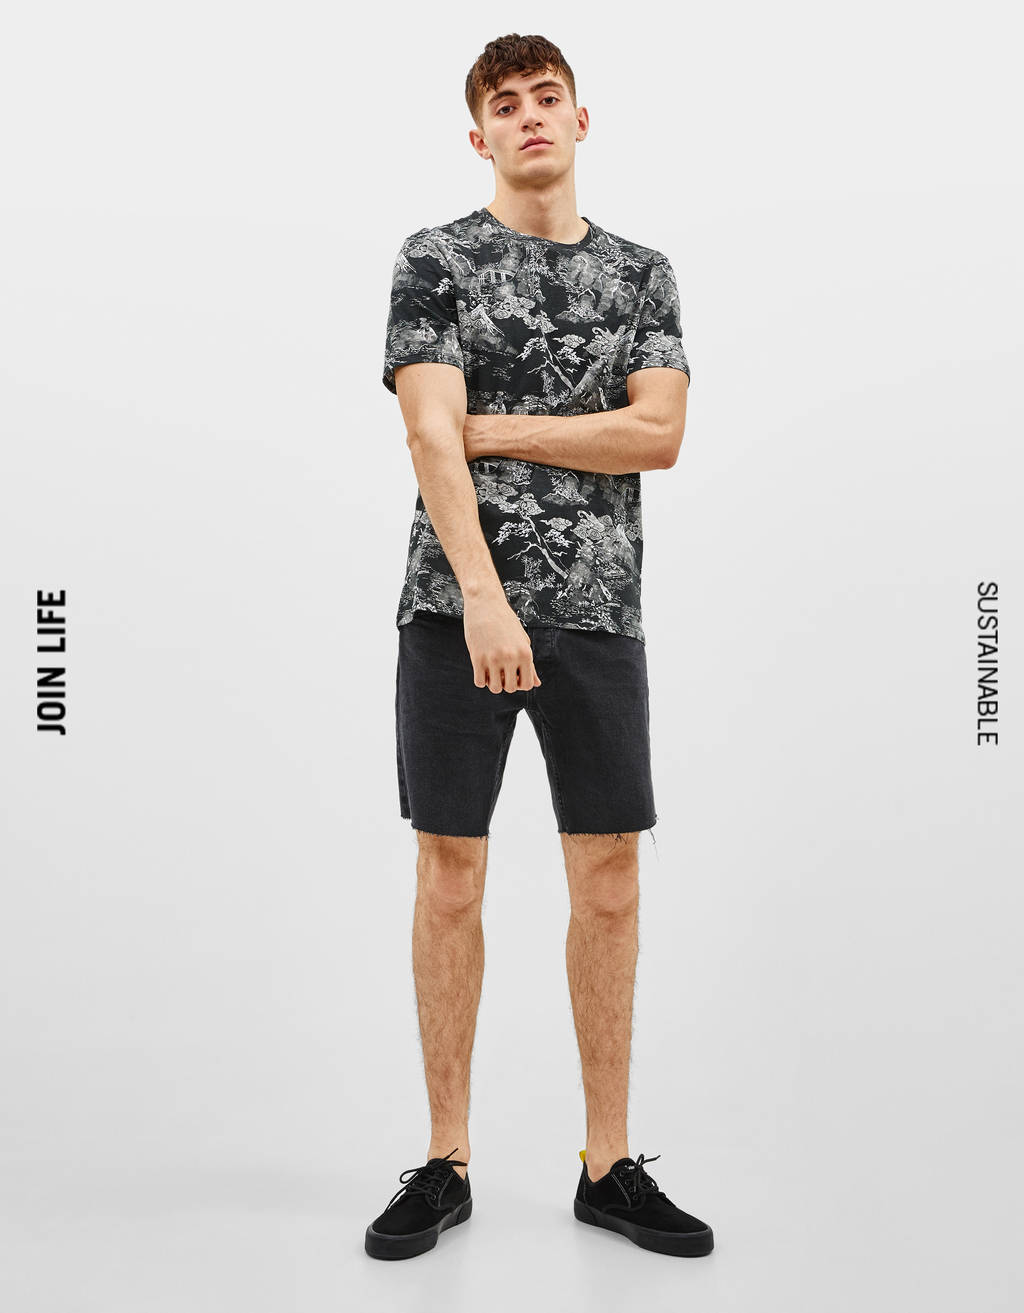 4a355f4f1039 Men's T-Shirts - Spring Summer 2019 | Bershka